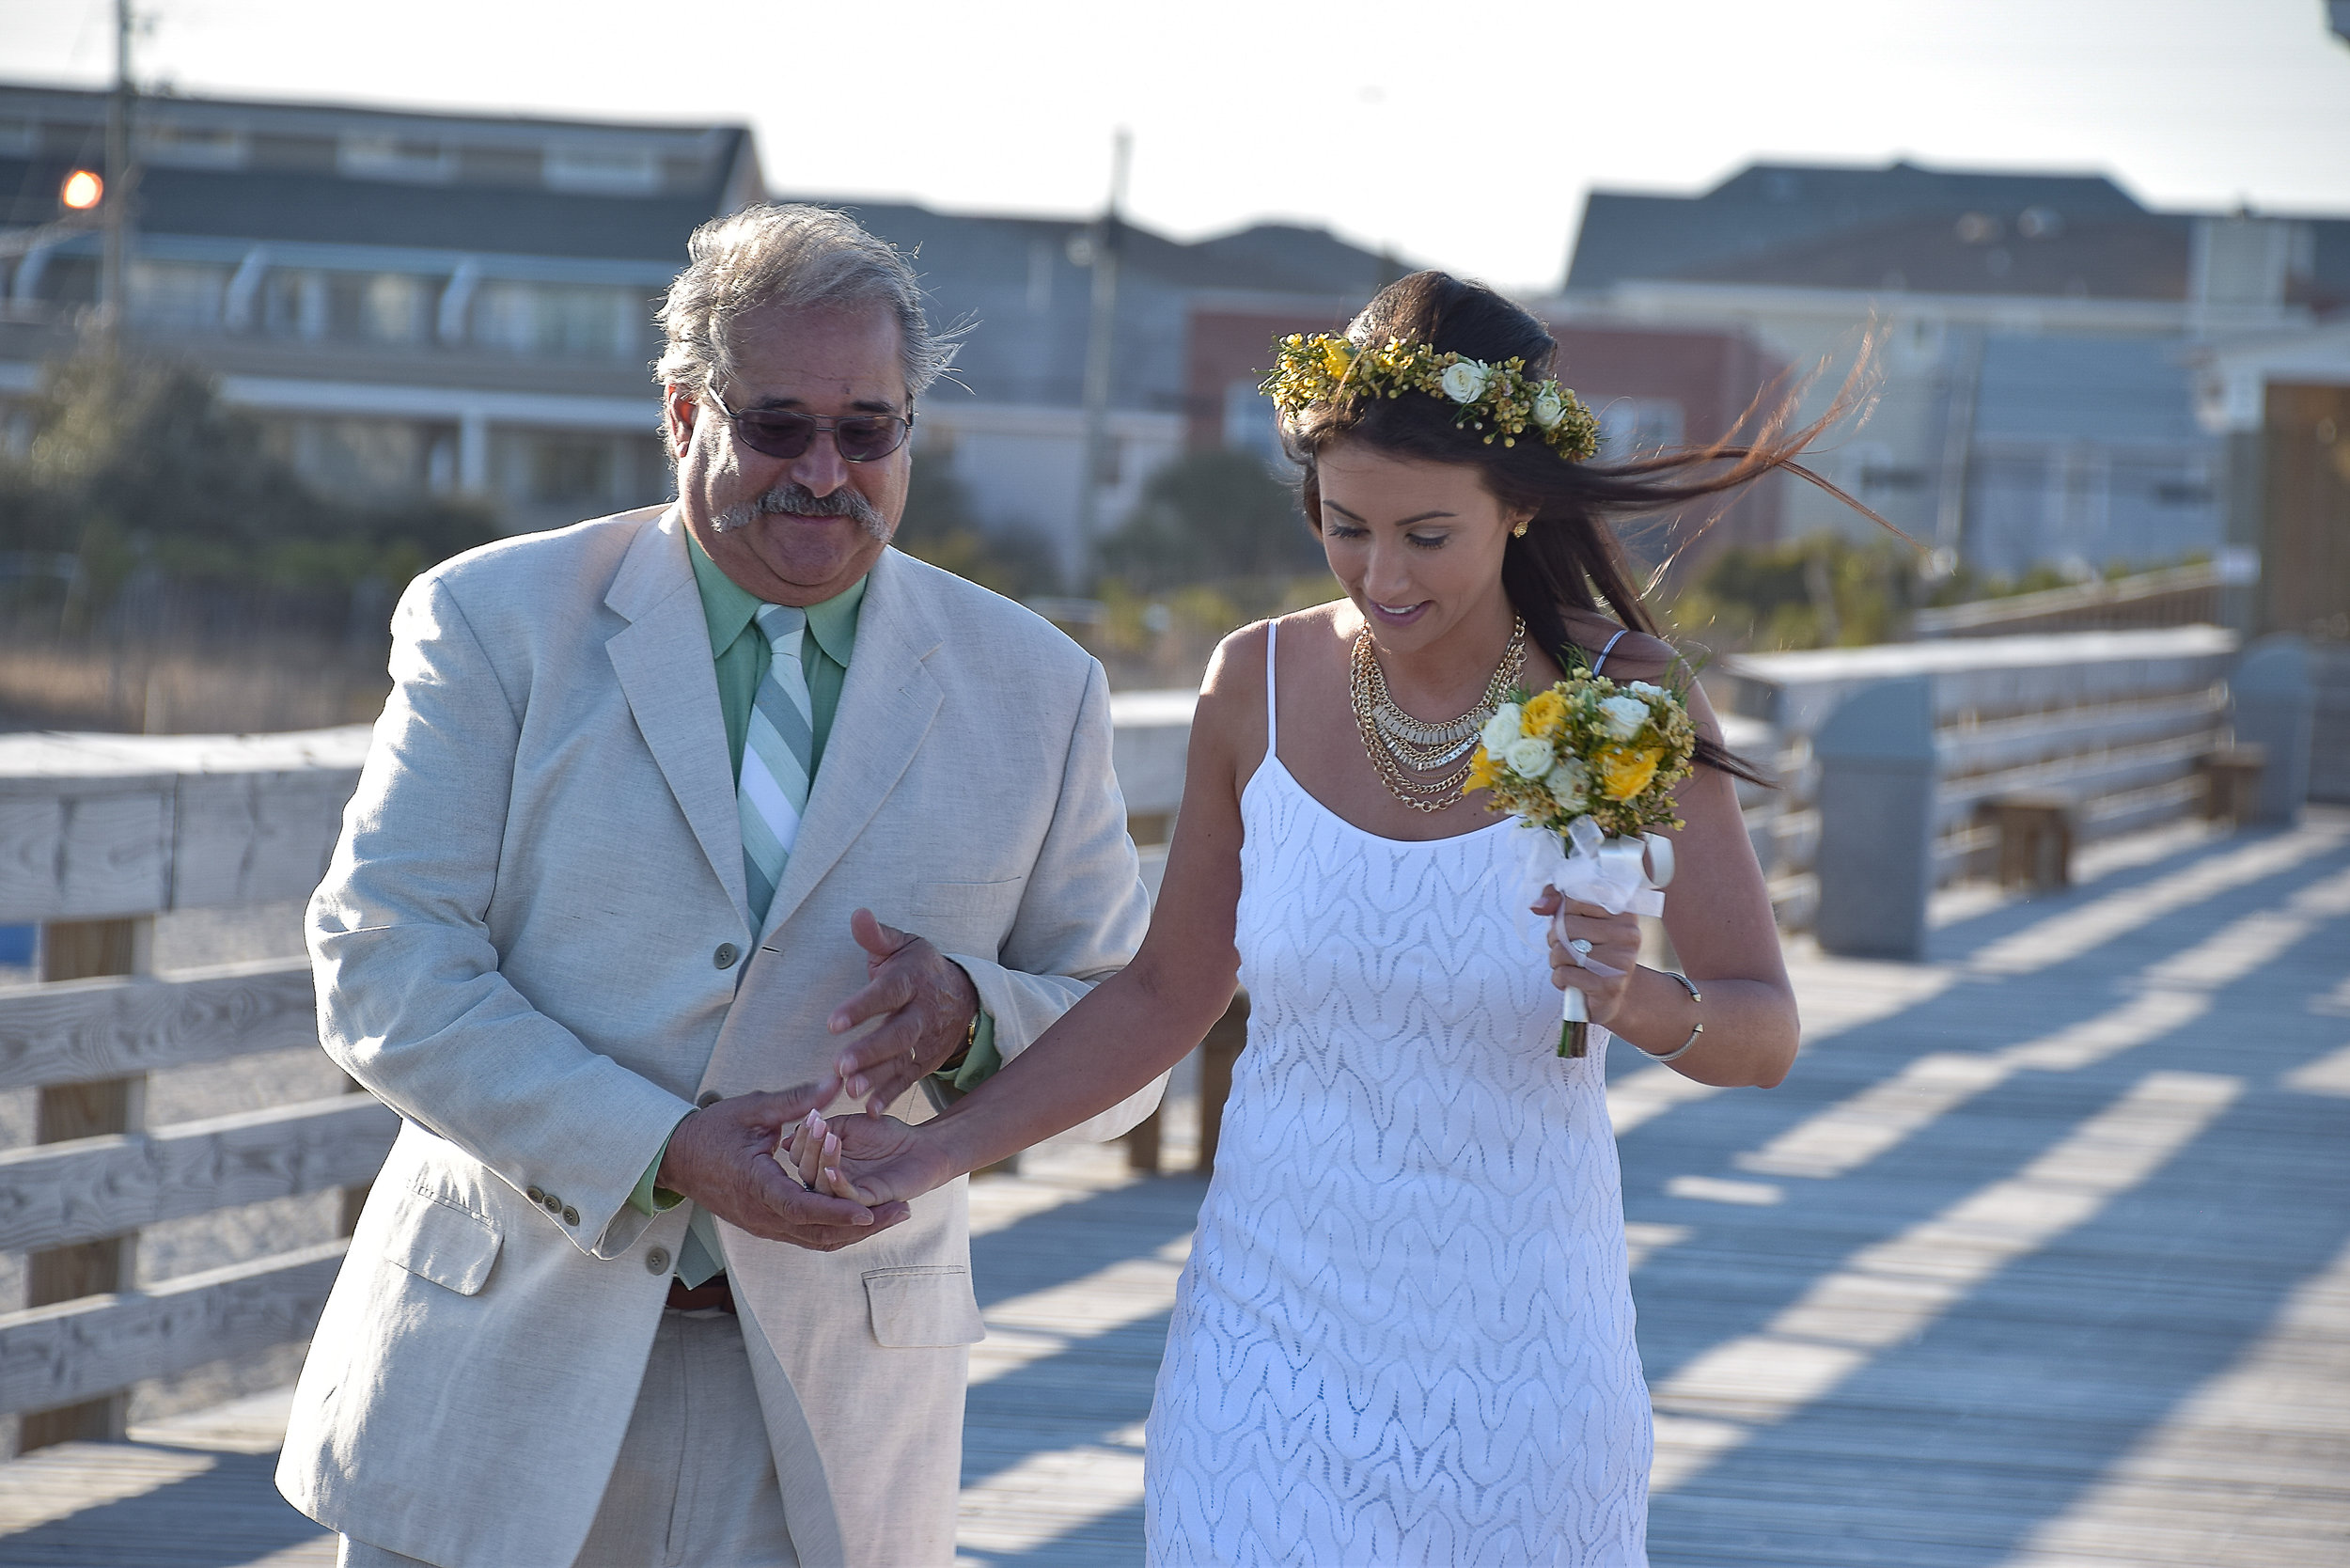 - Walking to the ceremony with her Dad on the Oceanic Pier in Wrightsville Beach, NC.